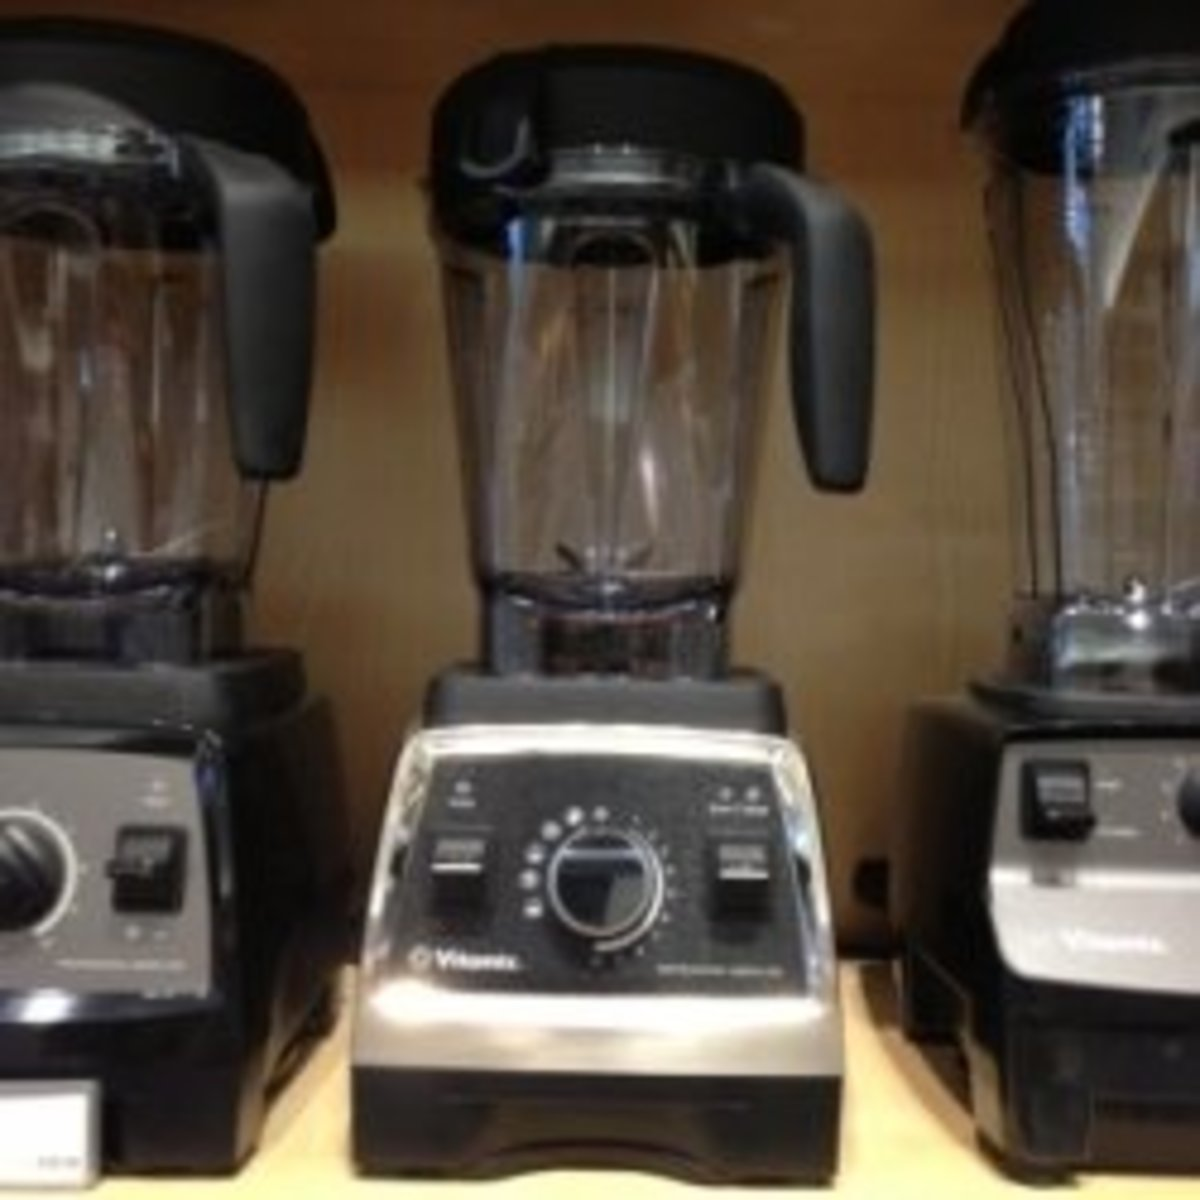 Vitamix 7500 Vs. 750: Which One Would I Buy?